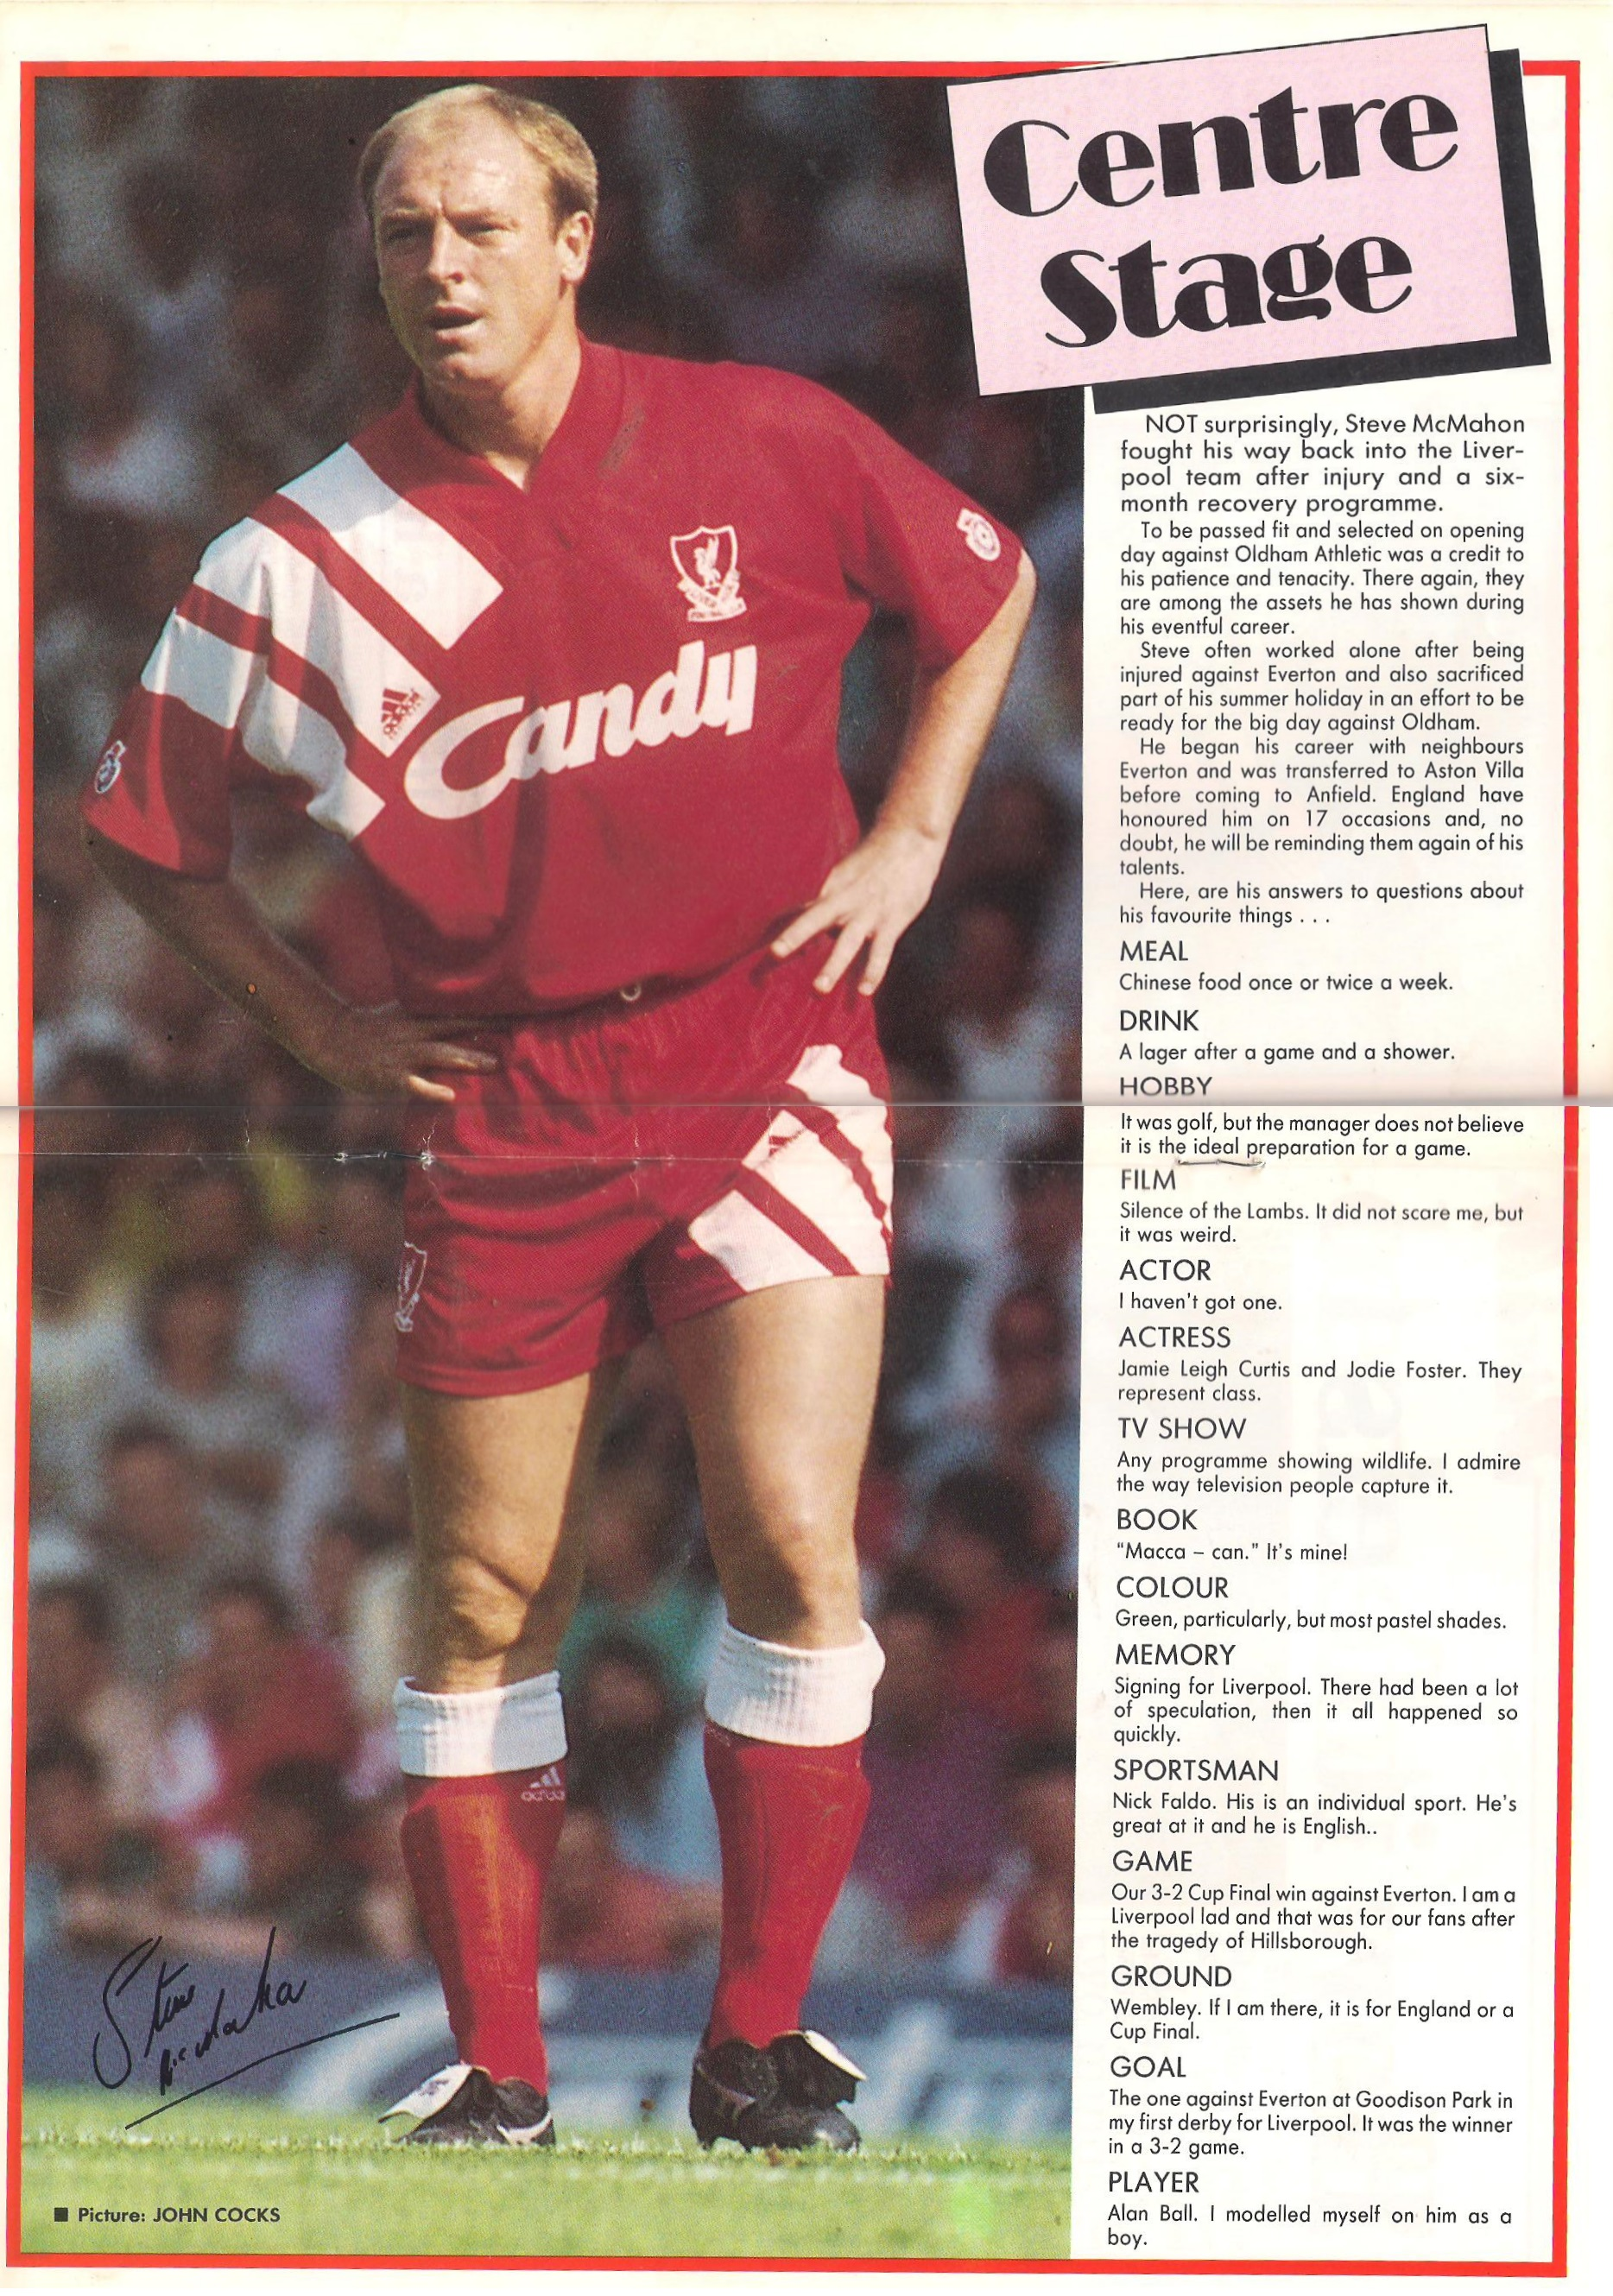 Centre stage - LFC match programme 1991